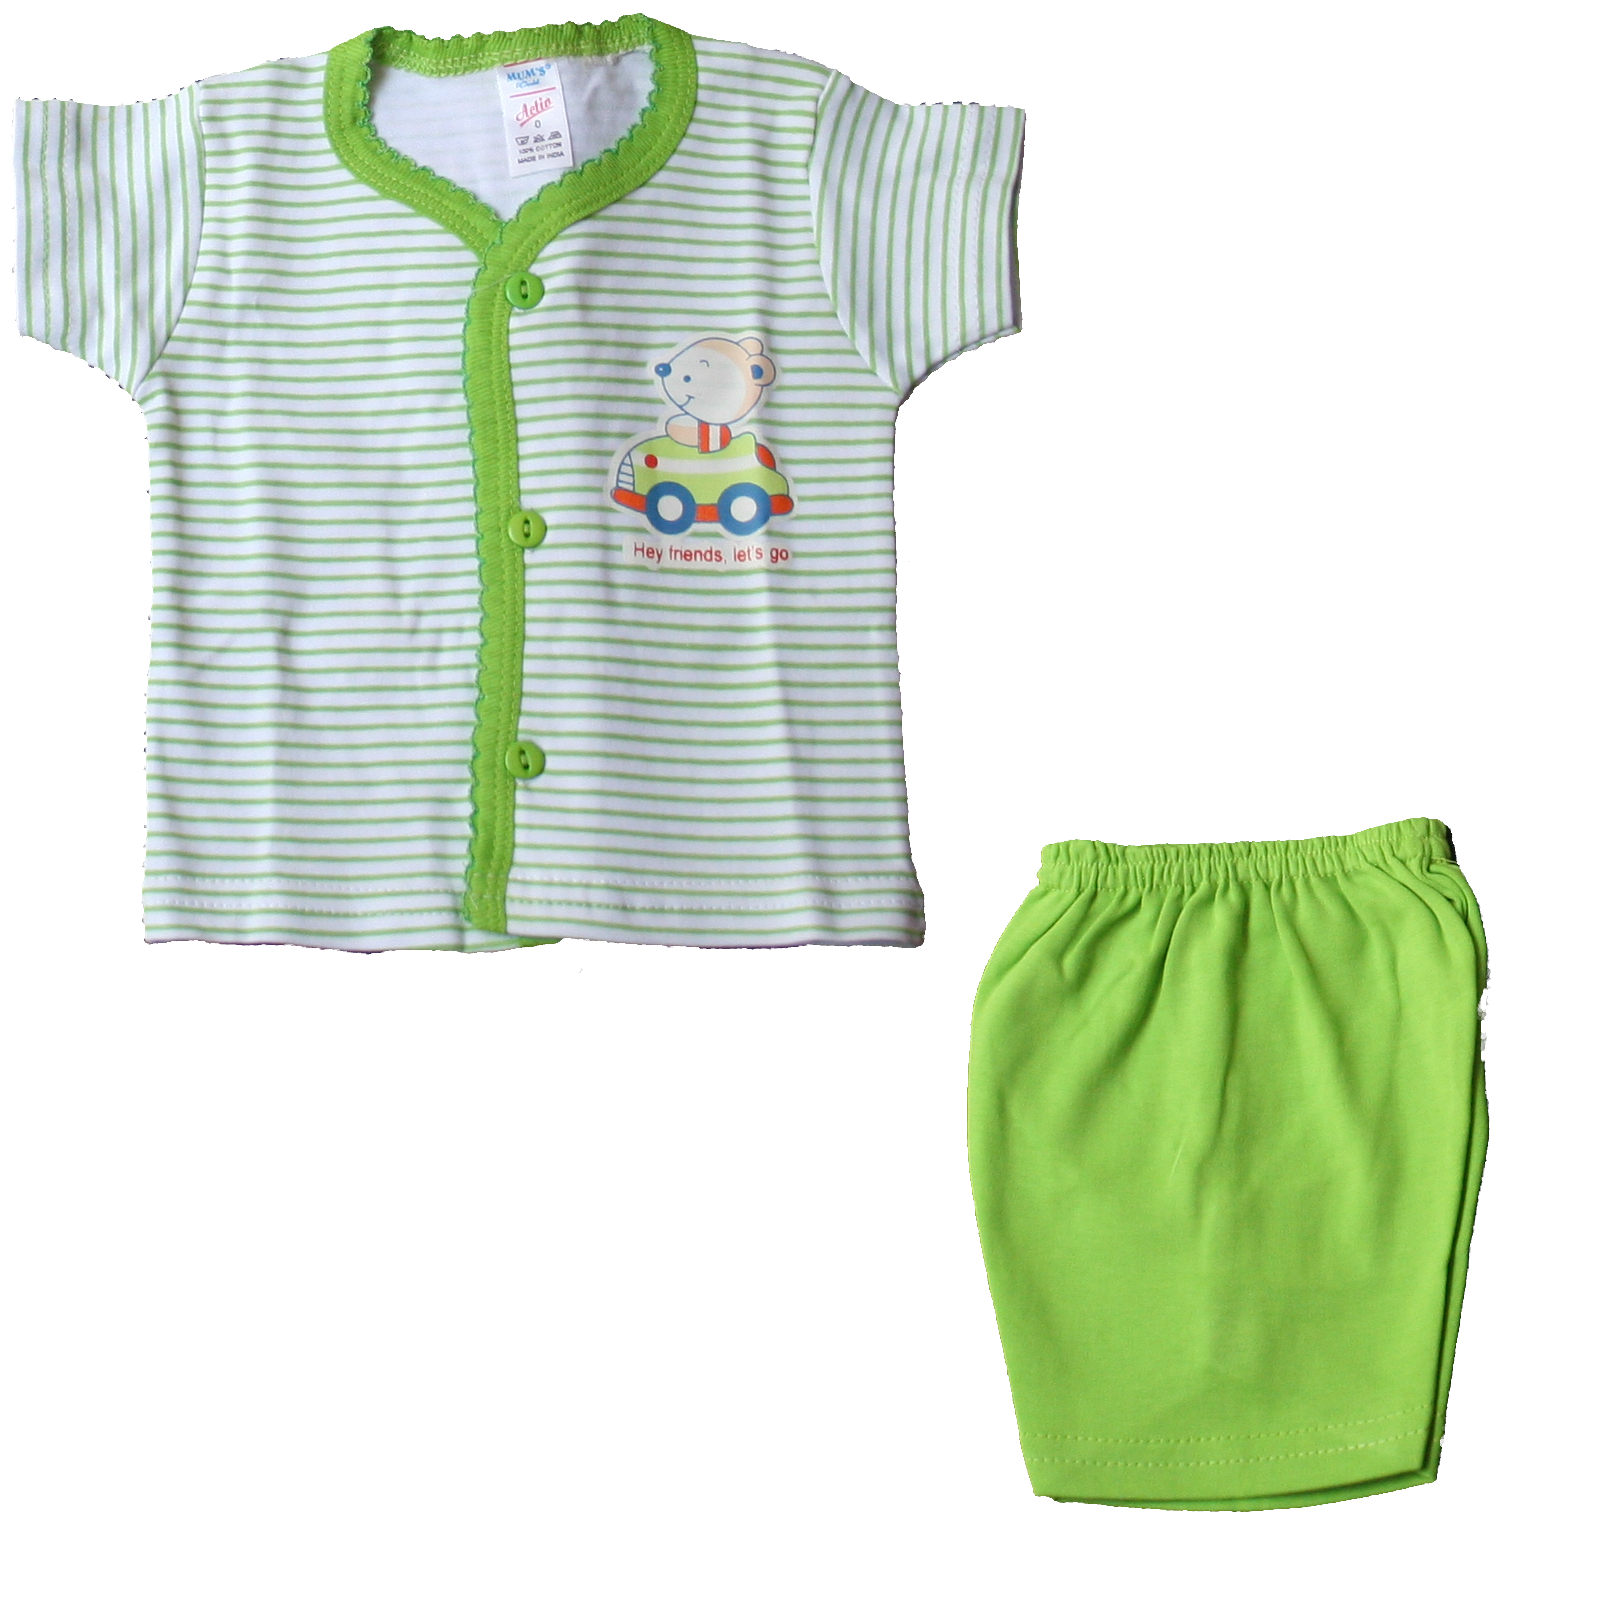 Newborn Assorted Complete Summer Clothing Collection Kit - Adio Clothing, Transparent background PNG HD thumbnail